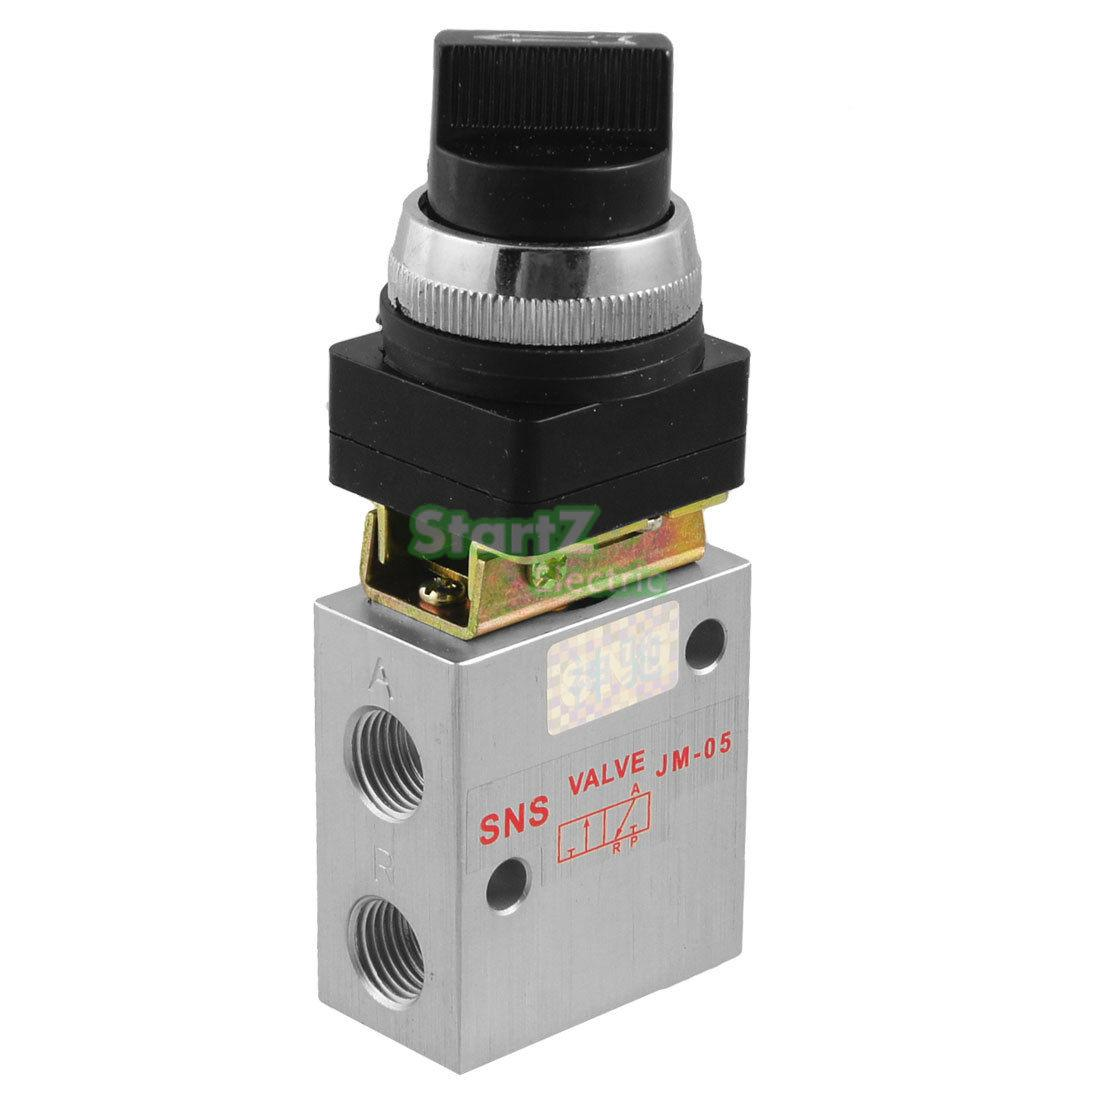 Pneumatic switch RC1/4 JM-05 2 Position 3 Way Selective Knob Type Mechanical Valve jm mov mechanical valve control valve people pneumatic components knob button mushroom head spin with a lock lever handle